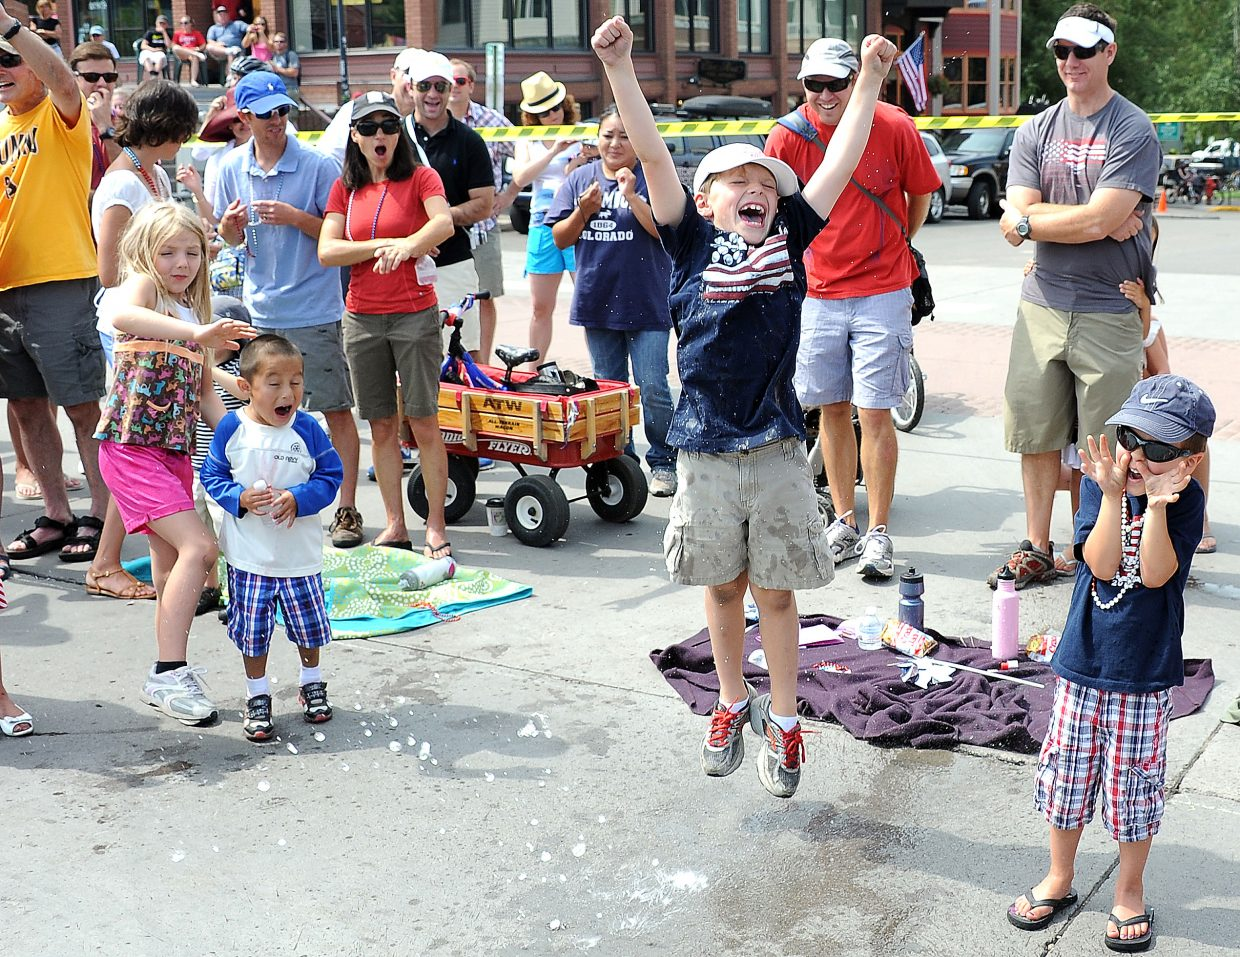 Tourists and locals alike packed the streets Wednesday morning for the Fourth of July parade through downtown Steamboat Springs. Hot weather and fire restrictions sapped some of the traditional activities out of the Fourth of July celebration, but it didn't take the enthusiasm from the crowd, which seemed to find particular joy in floats that sprayed water and offered relief from the heat.